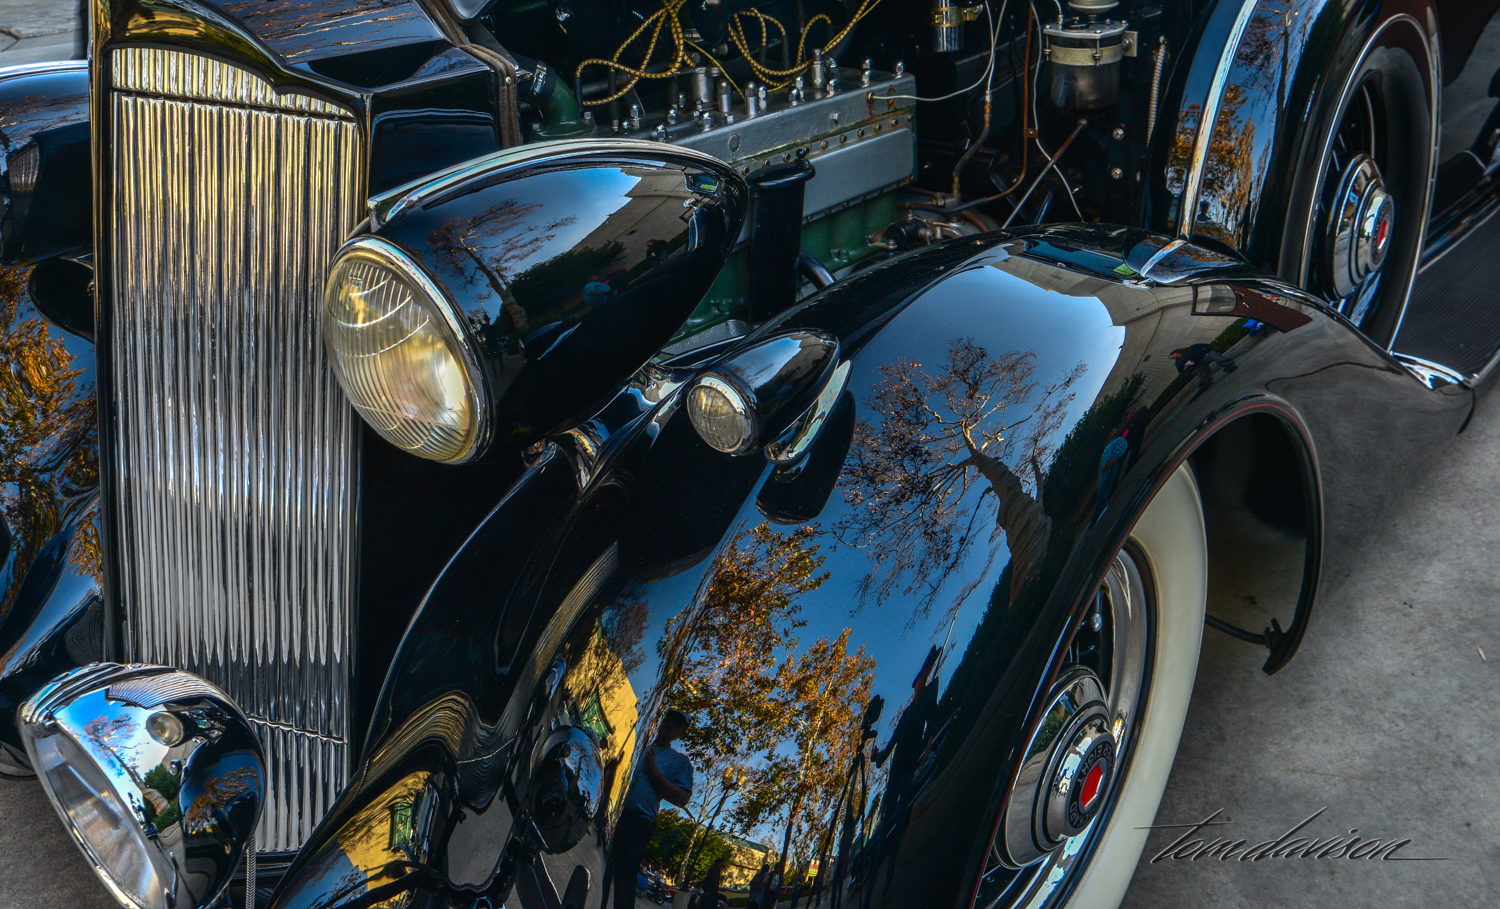 Reflections on 1937 Packard fender.